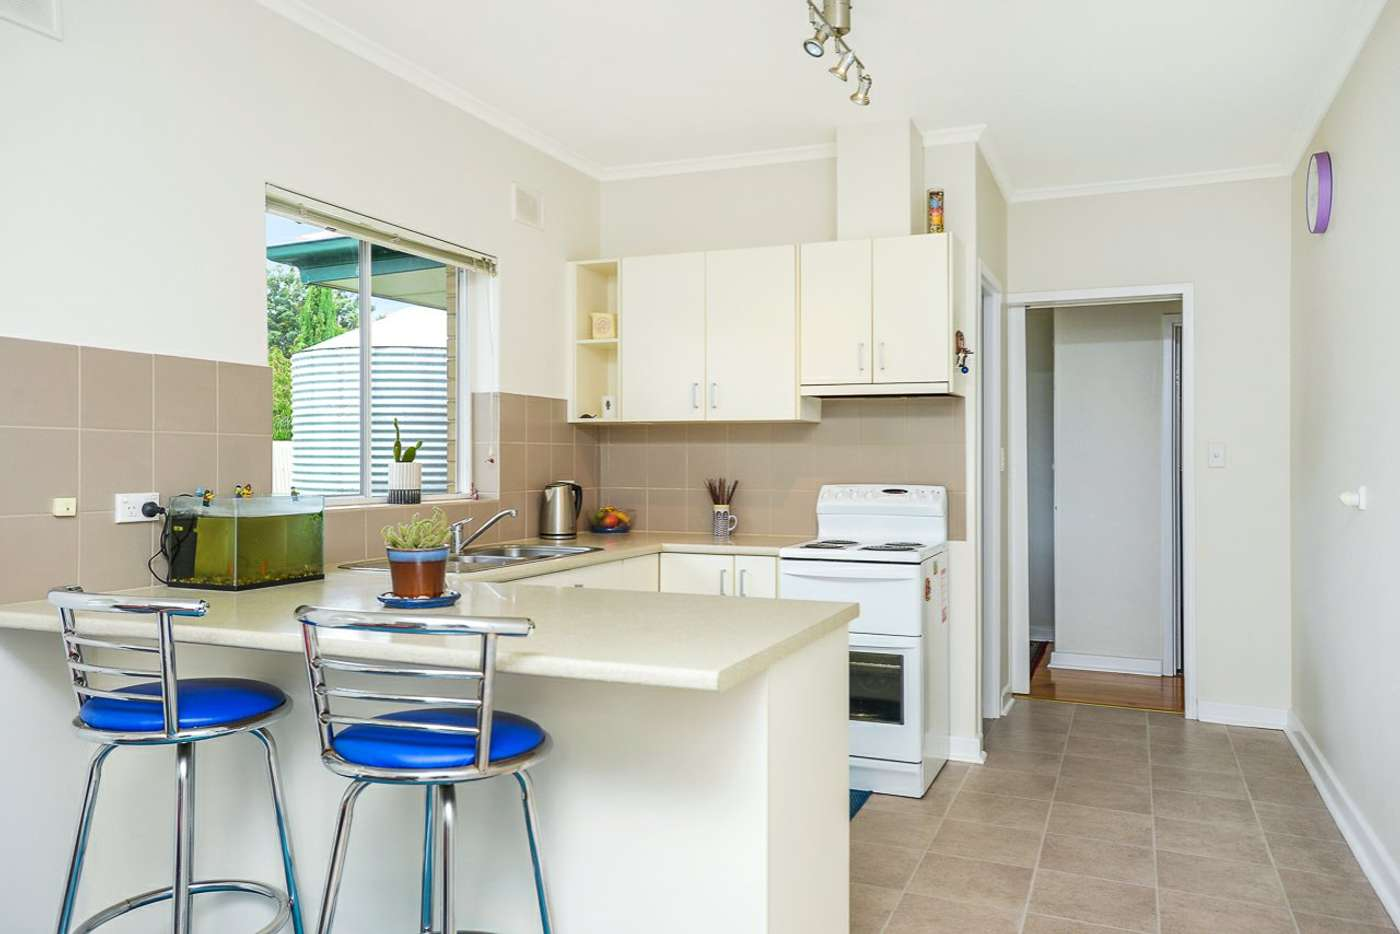 Sixth view of Homely house listing, 16 Churchill Road, Victor Harbor SA 5211